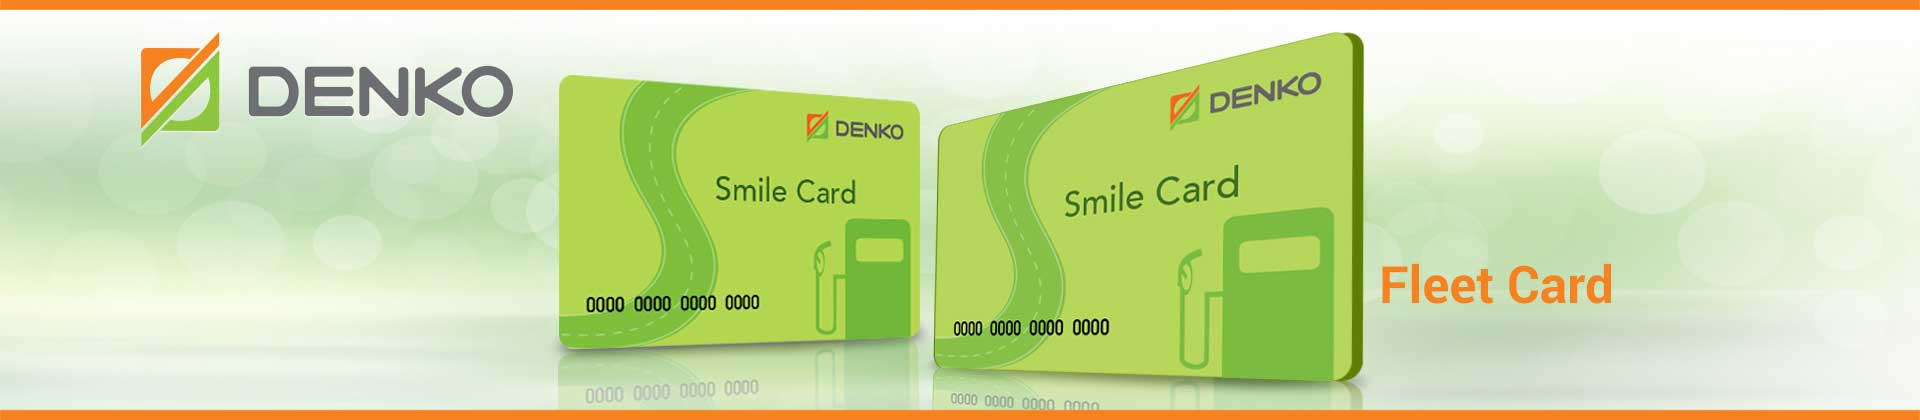 fleet-smile-card